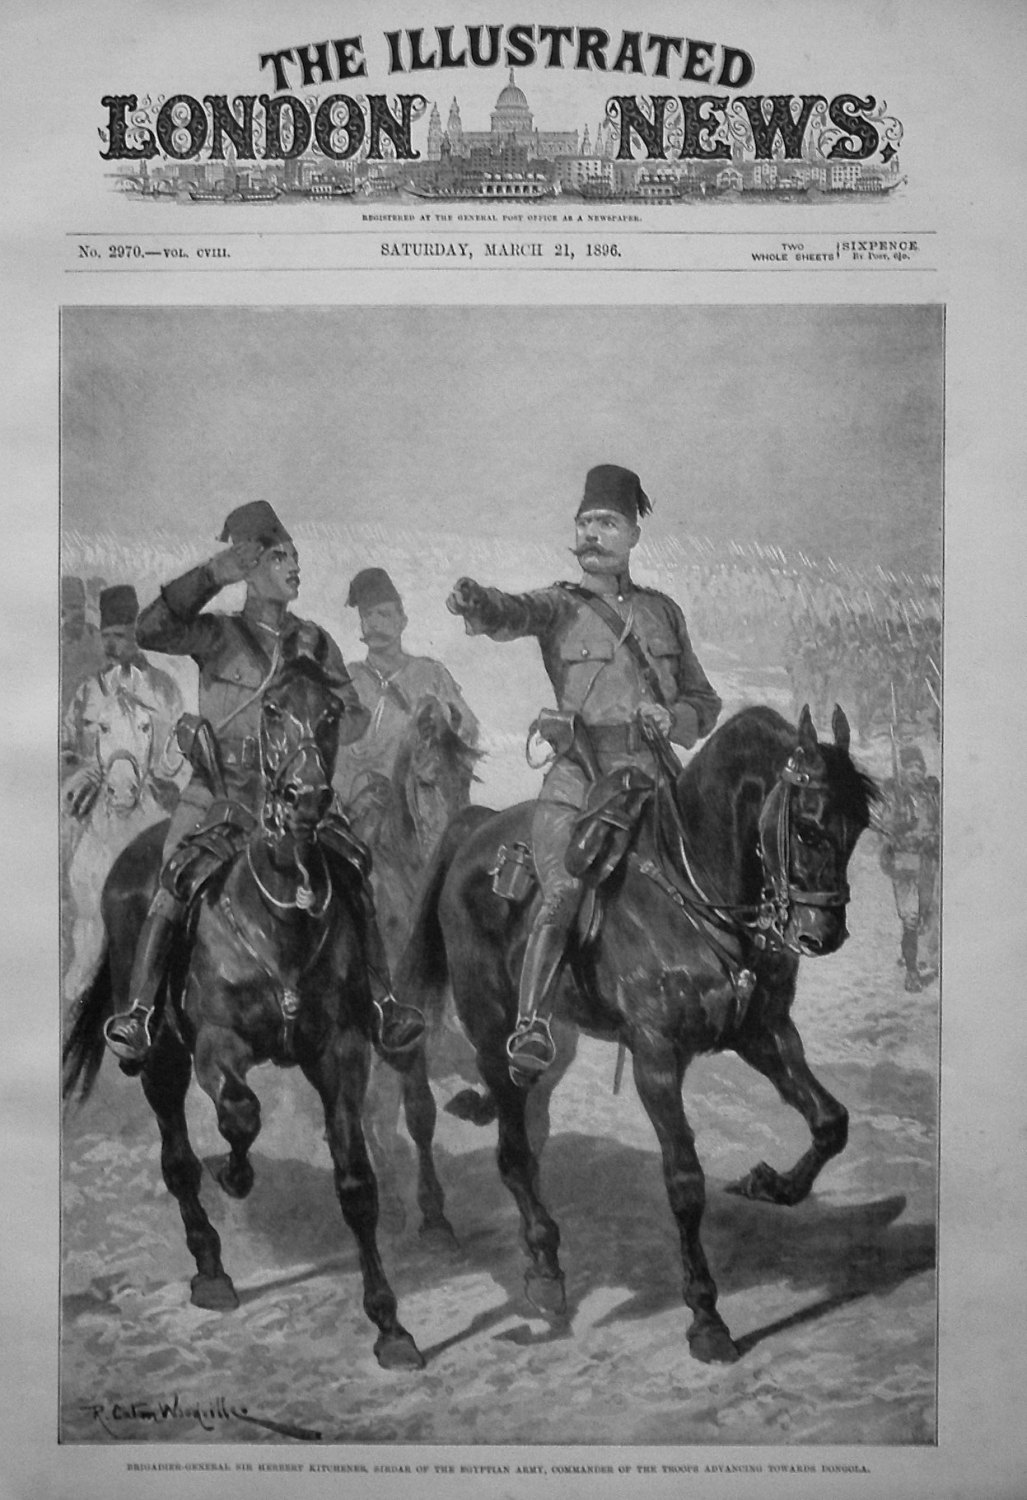 Brigadier-General Sir Herbert Kitchener, Sirdar of the Egyptian Army, Comma